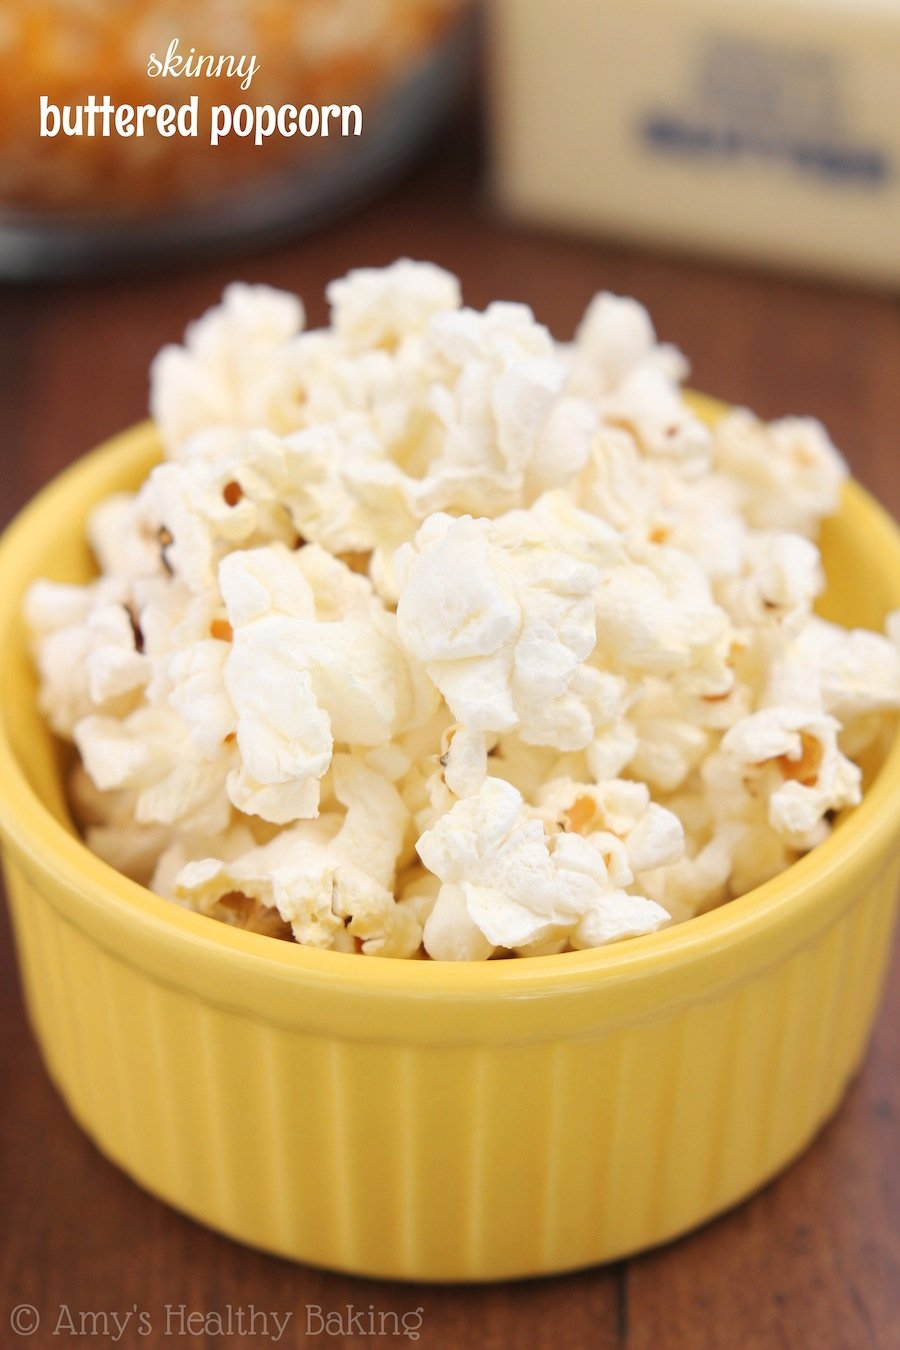 Skinny Buttered Popcorn Amy S Healthy Baking